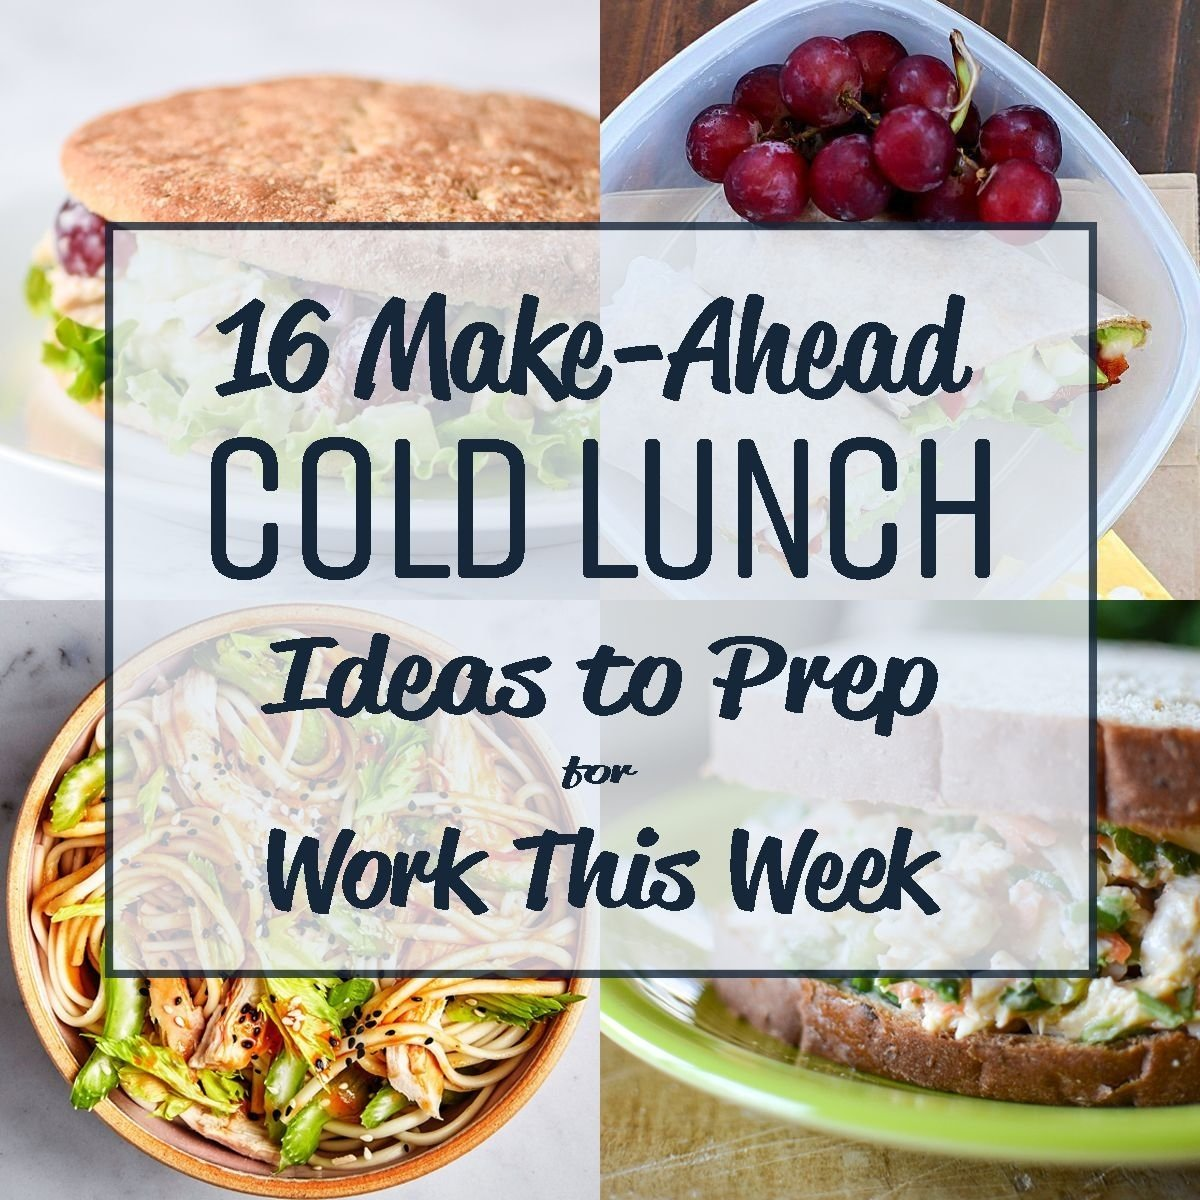 10 Fabulous Quick And Healthy Lunch Ideas For Work 16 make ahead cold lunch ideas to prep for work this week cold 2 2020